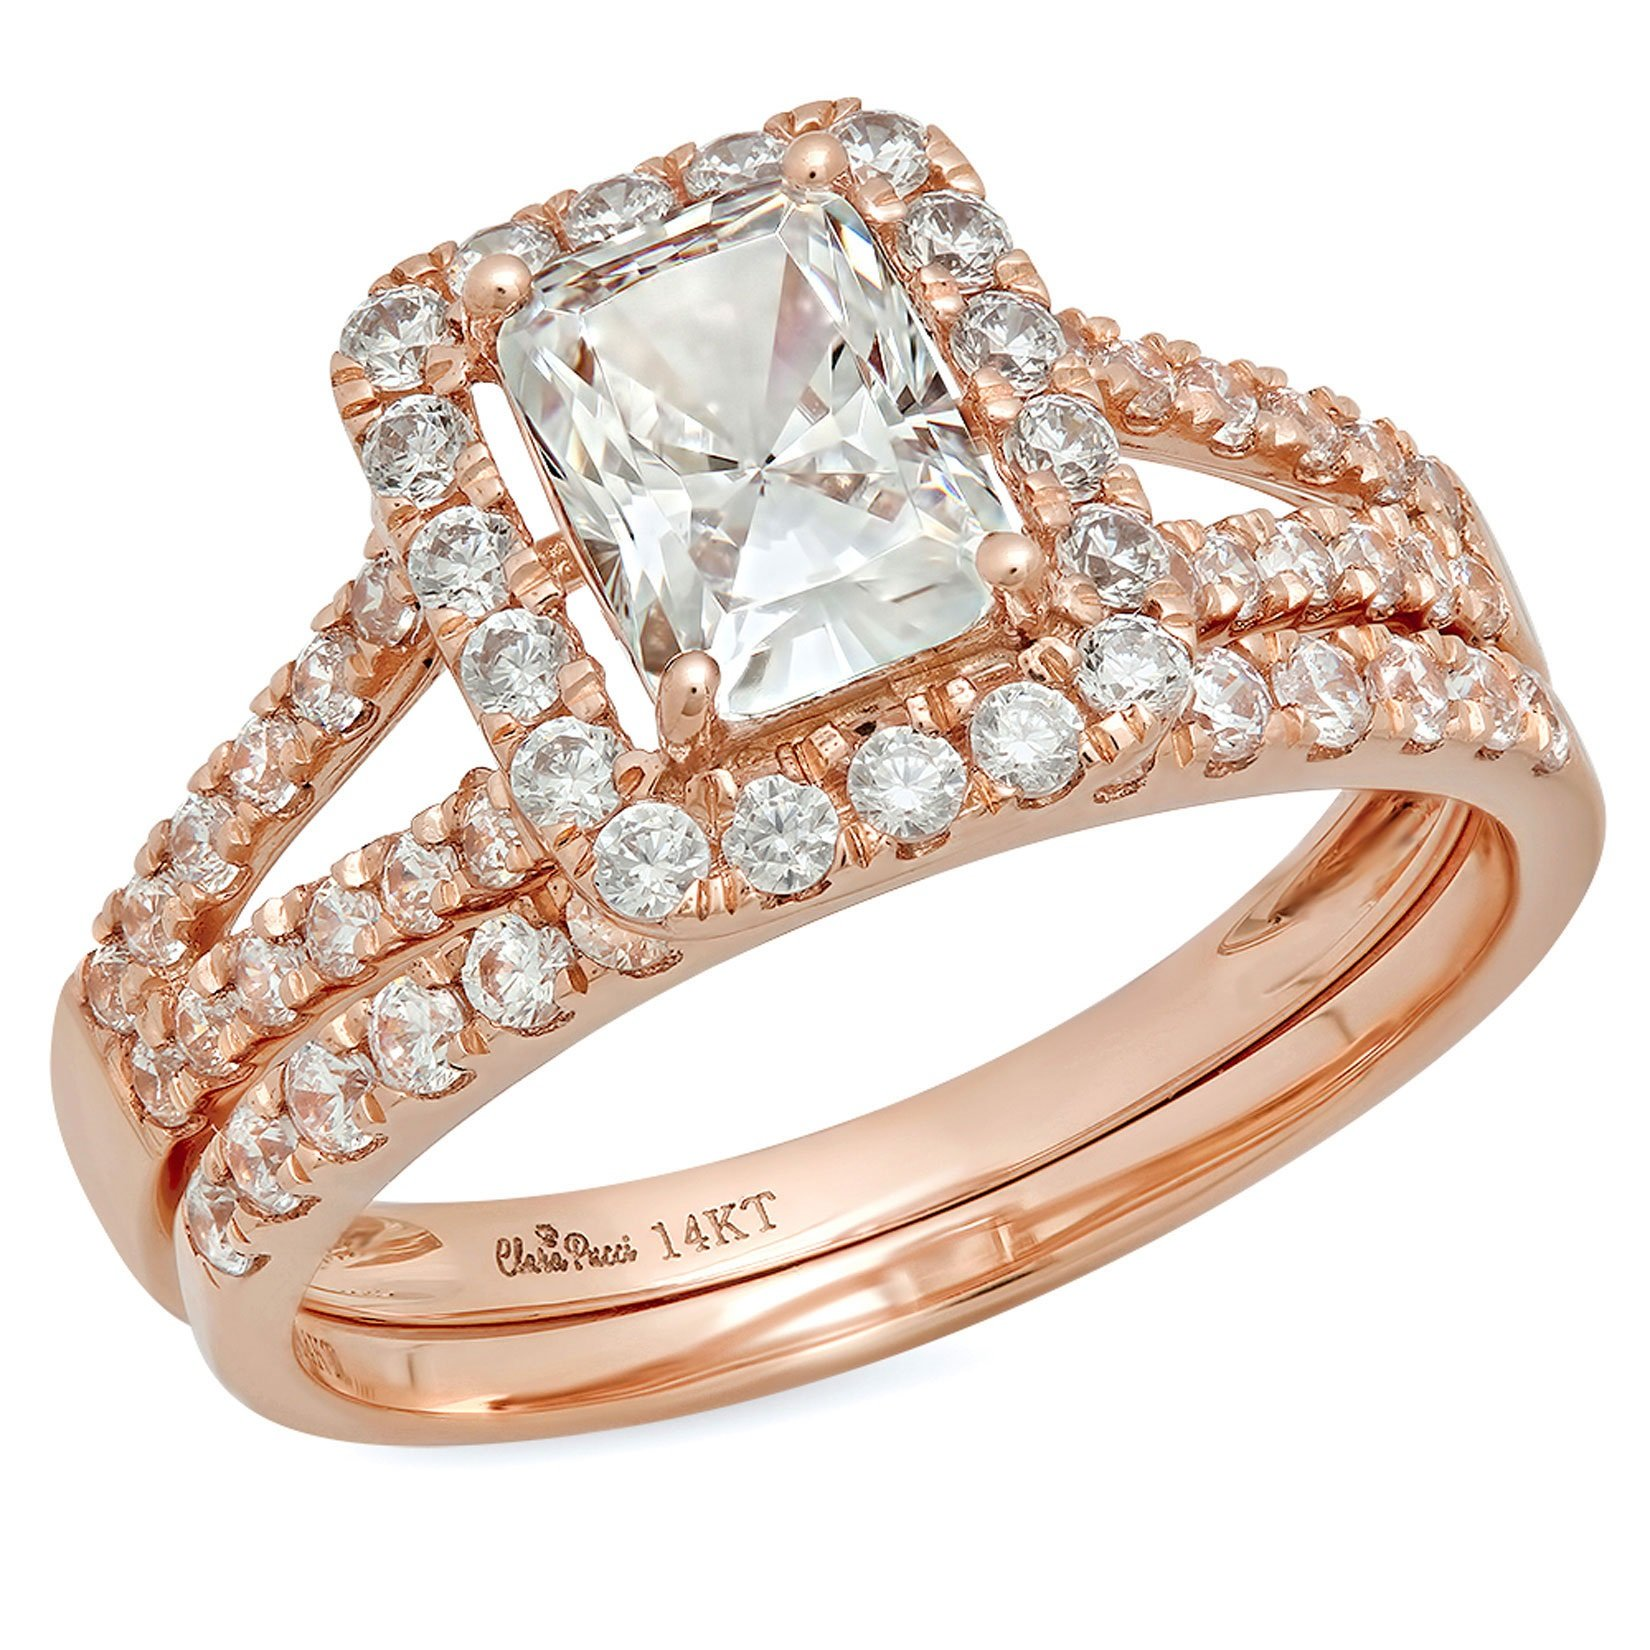 Clara Pucci 1.5 CT Emerald Cut Pave Halo Bridal Engagement Wedding Ring band set 14k Rose Gold, Size 10